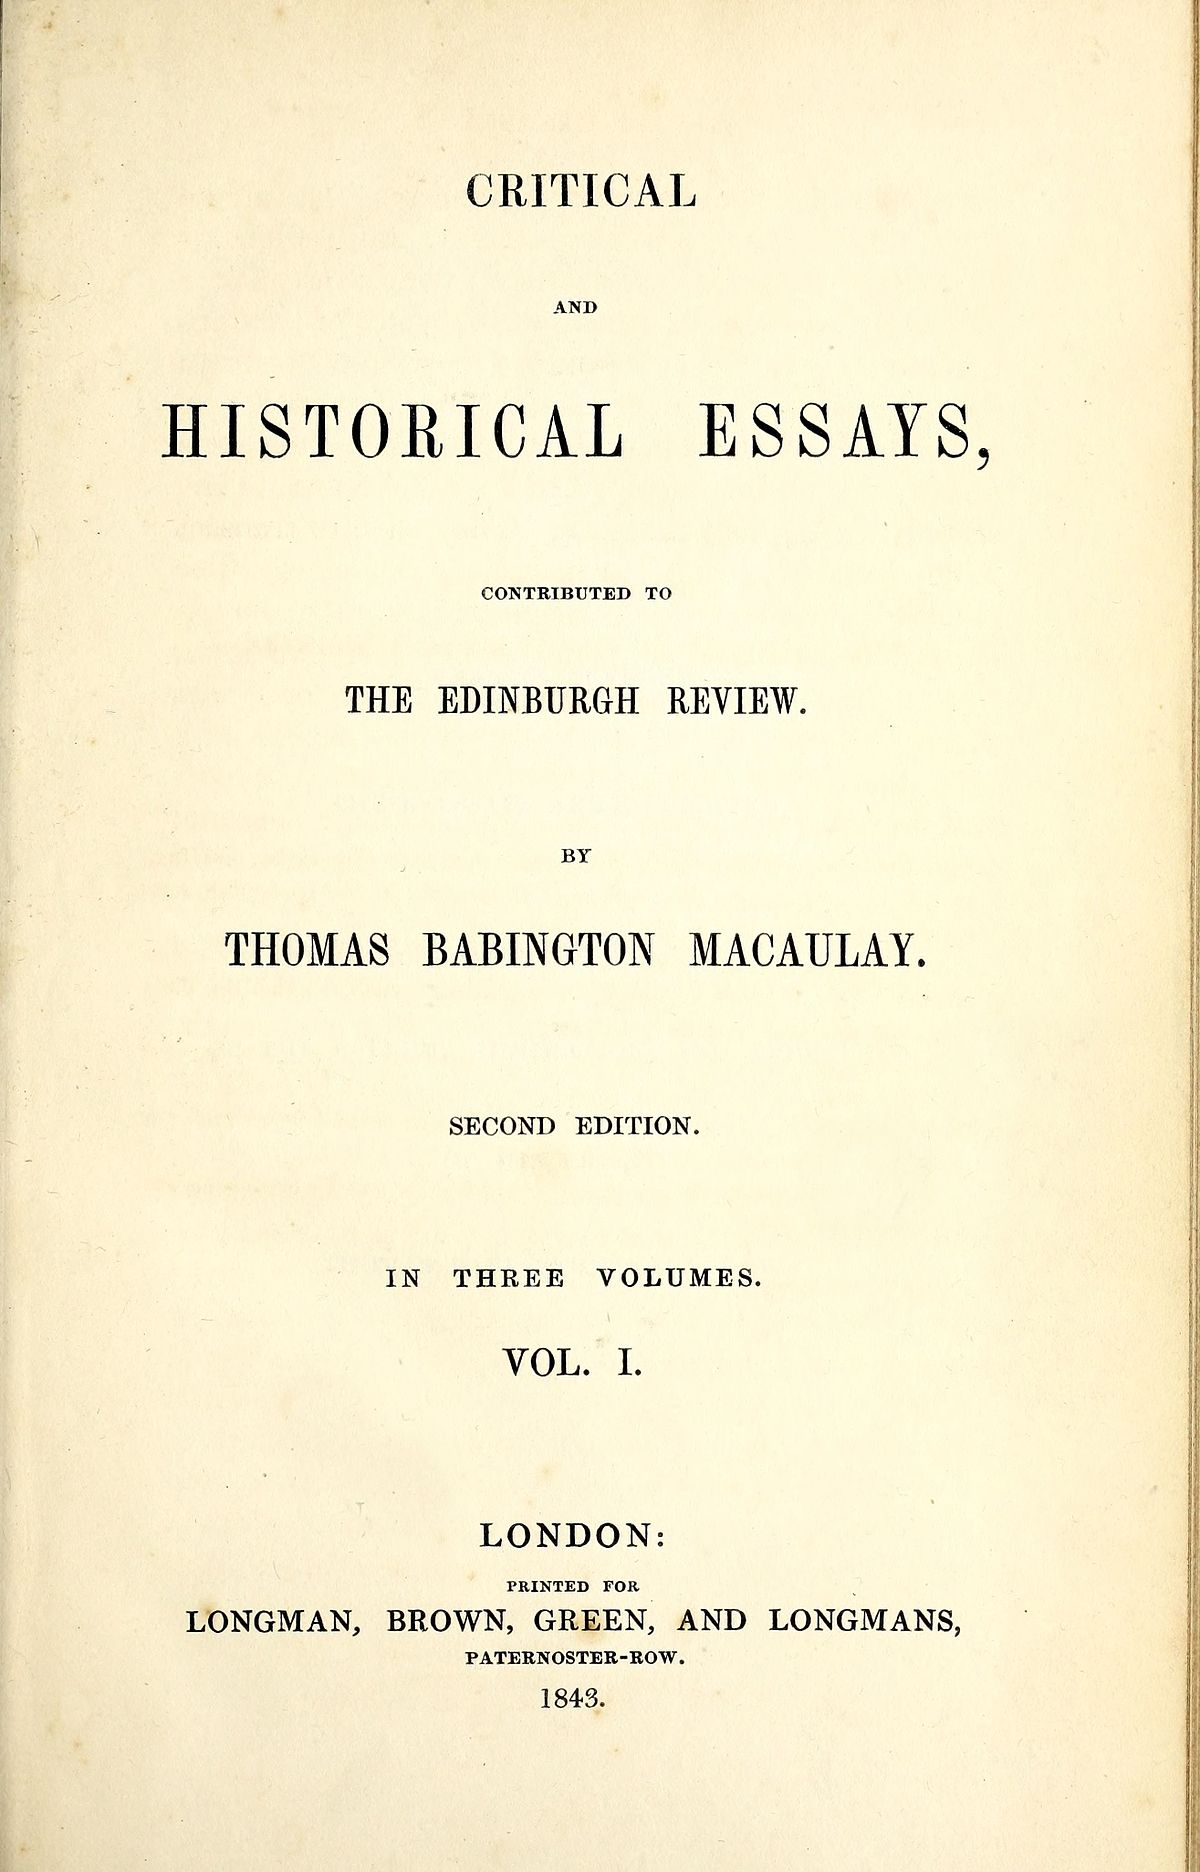 thomas babington macaulay essay on milton  thomas babington macaulay essay on milton